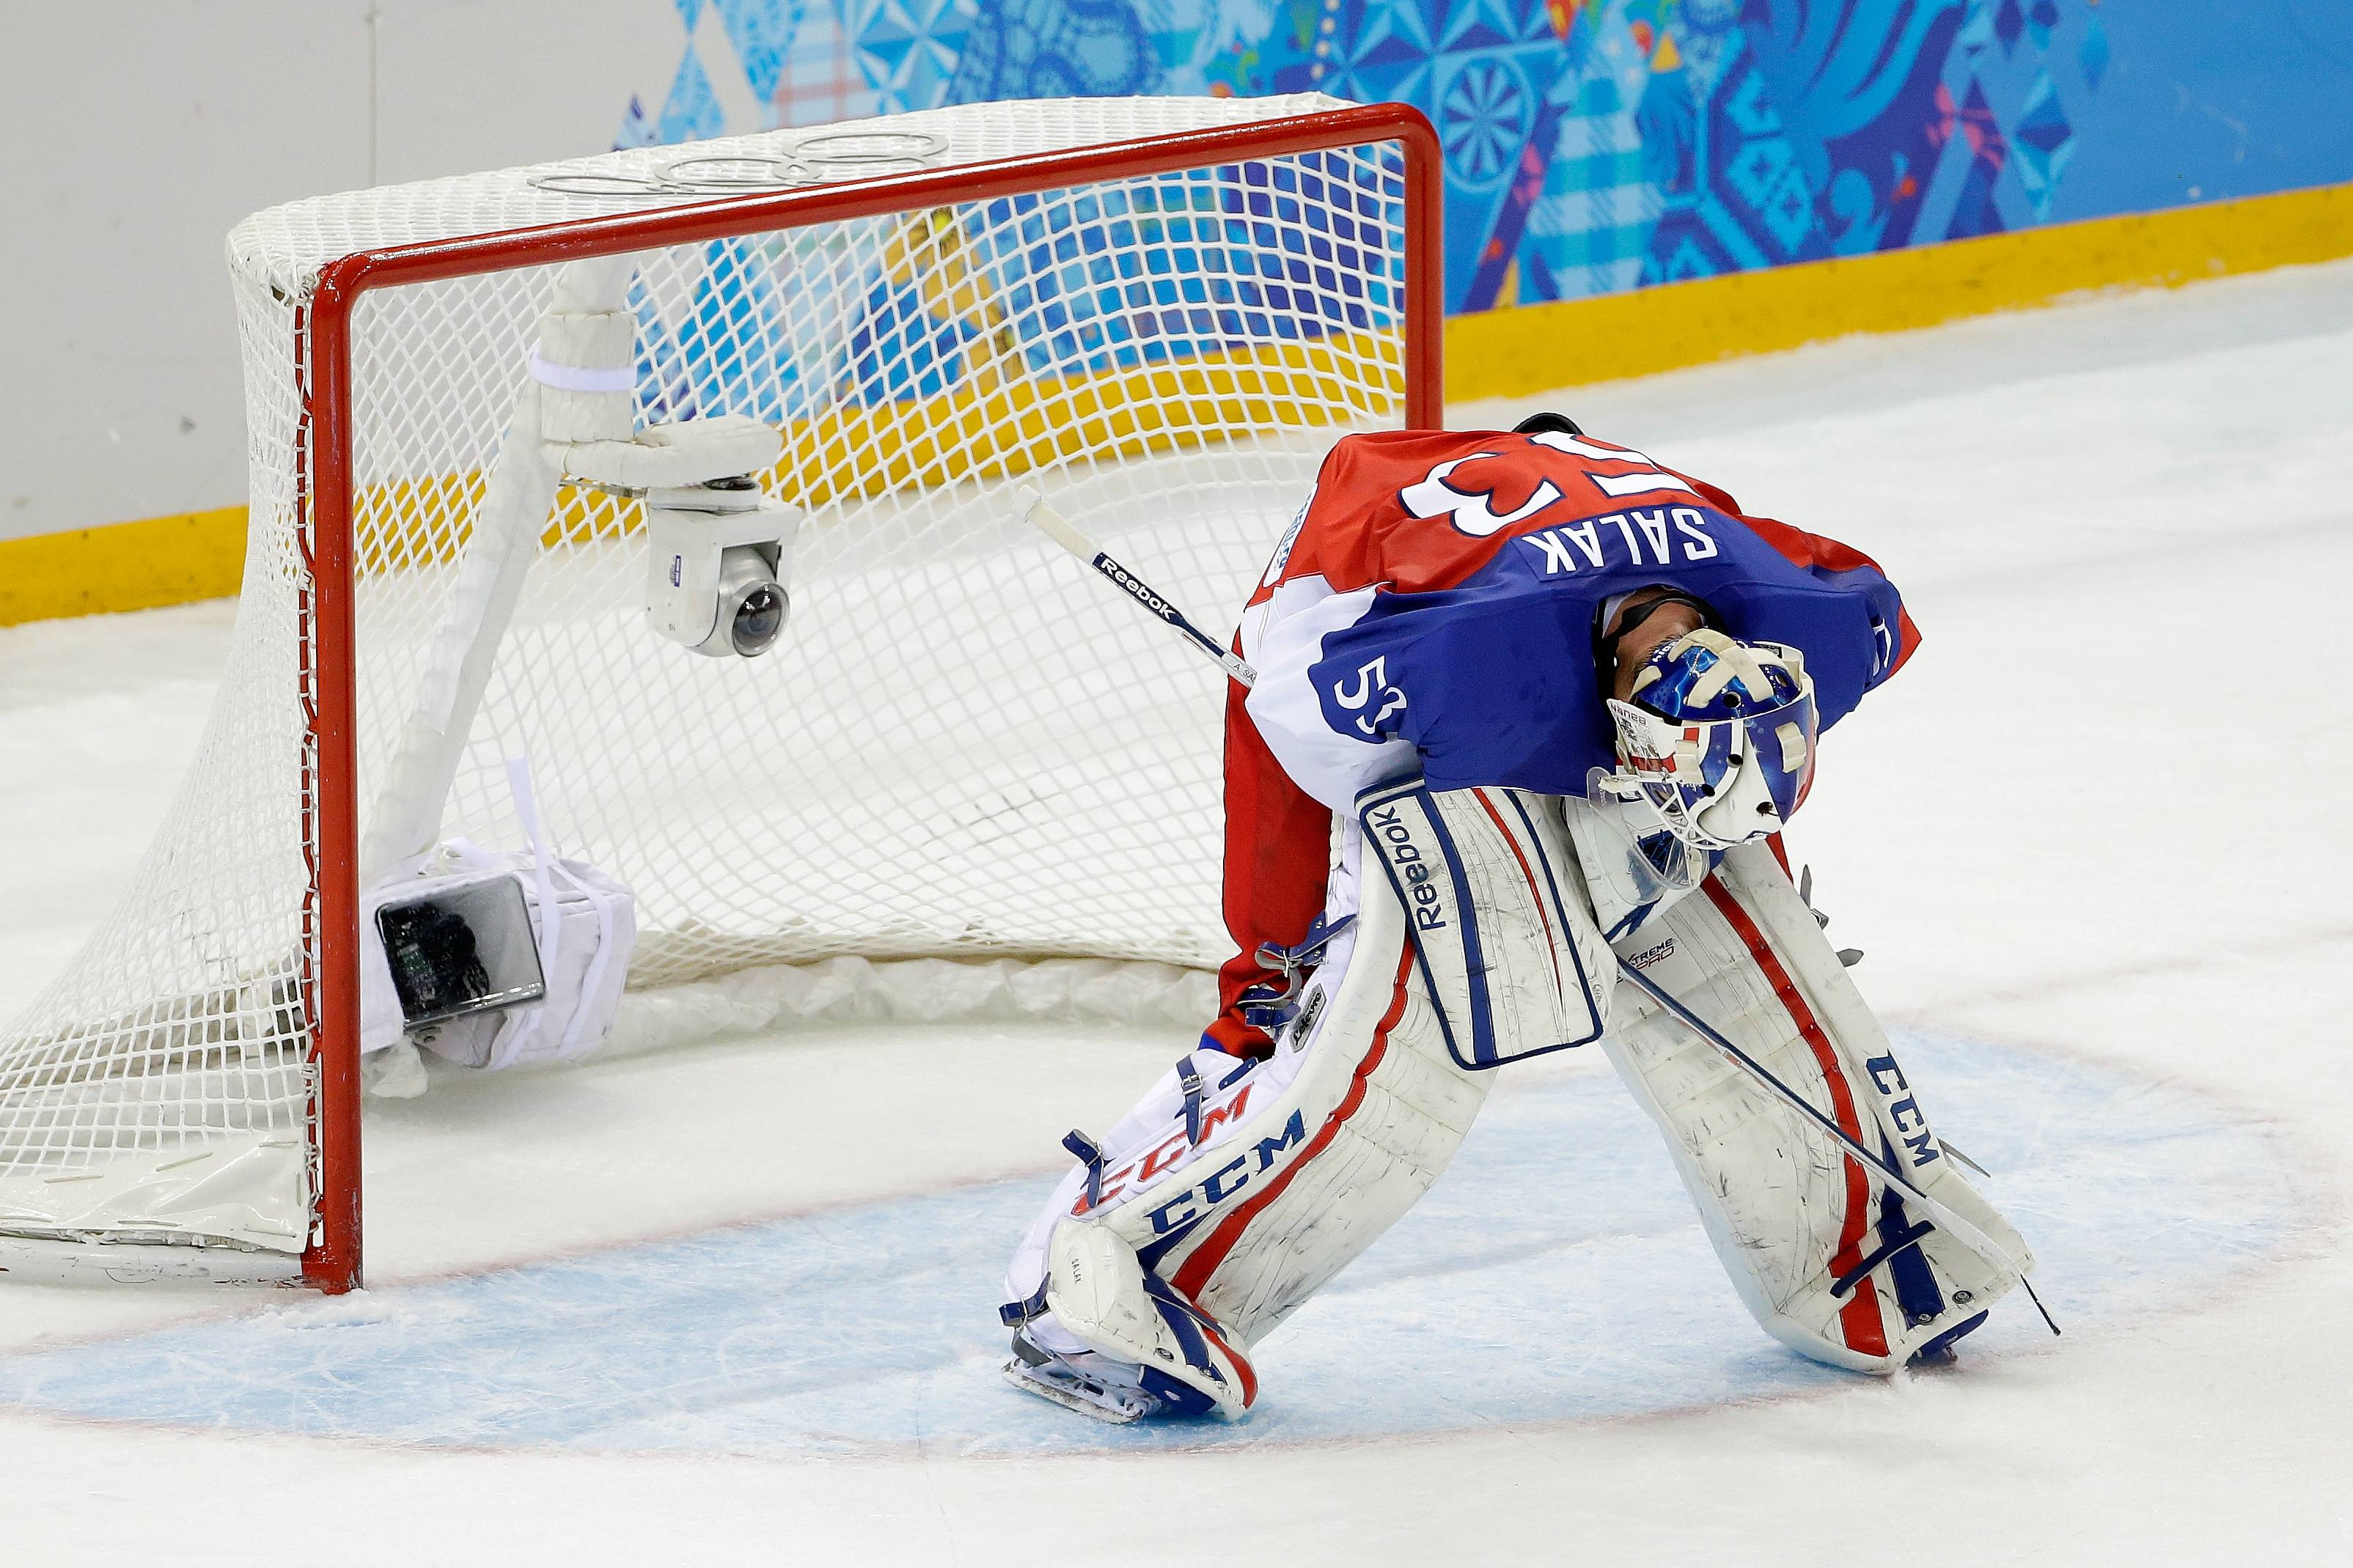 Czech Republic goaltender Alexander Salak looks down at the ice after the team's 5-2 loss to the United States in the men's quarterfinal hockey game.